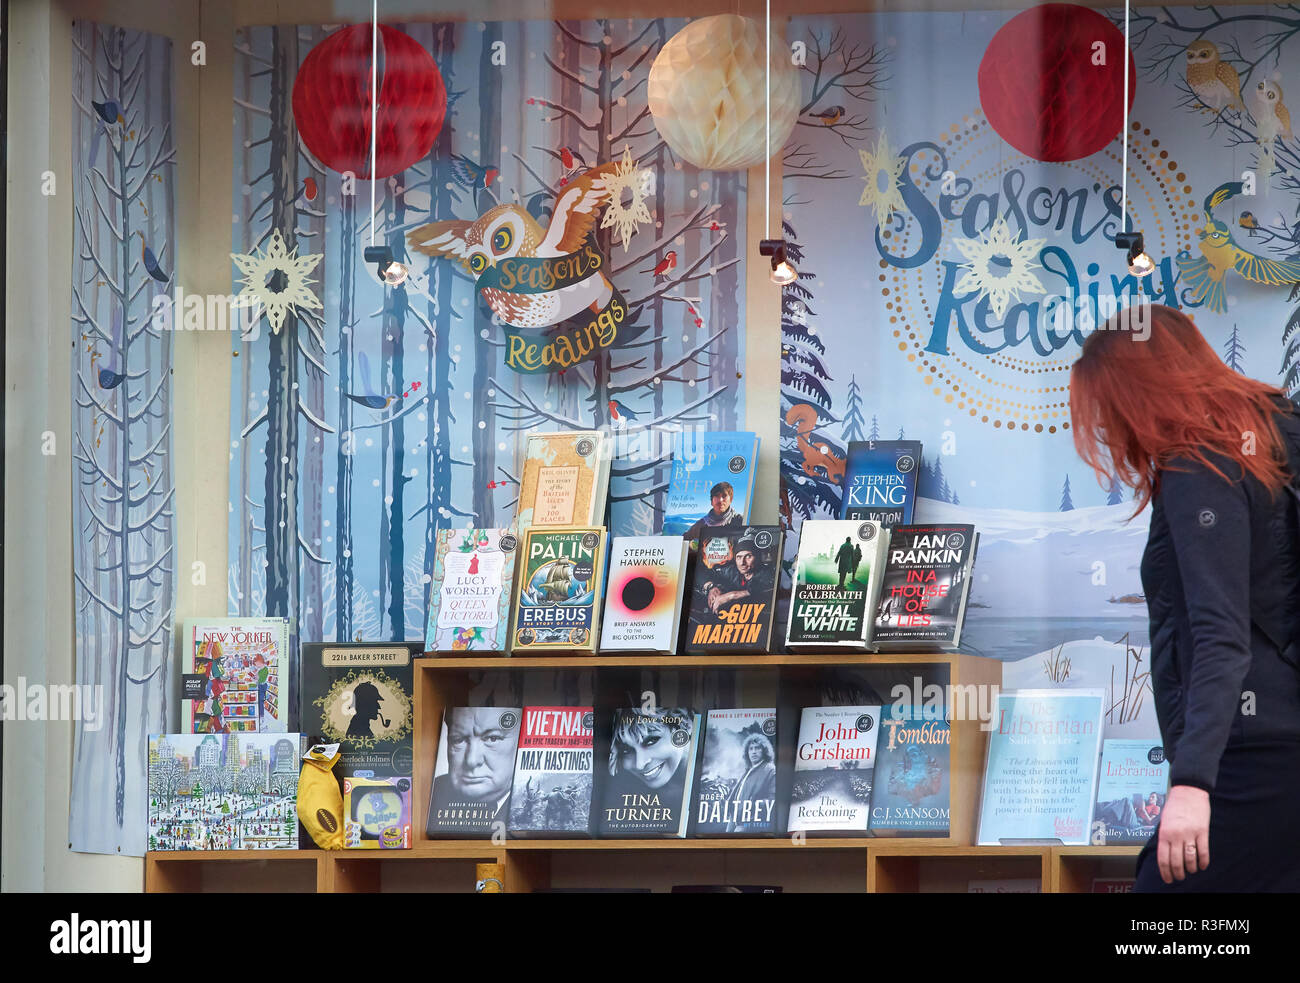 Display of books in a bookshop window with decorations for christmas time and a seasons reading banner. - Stock Image